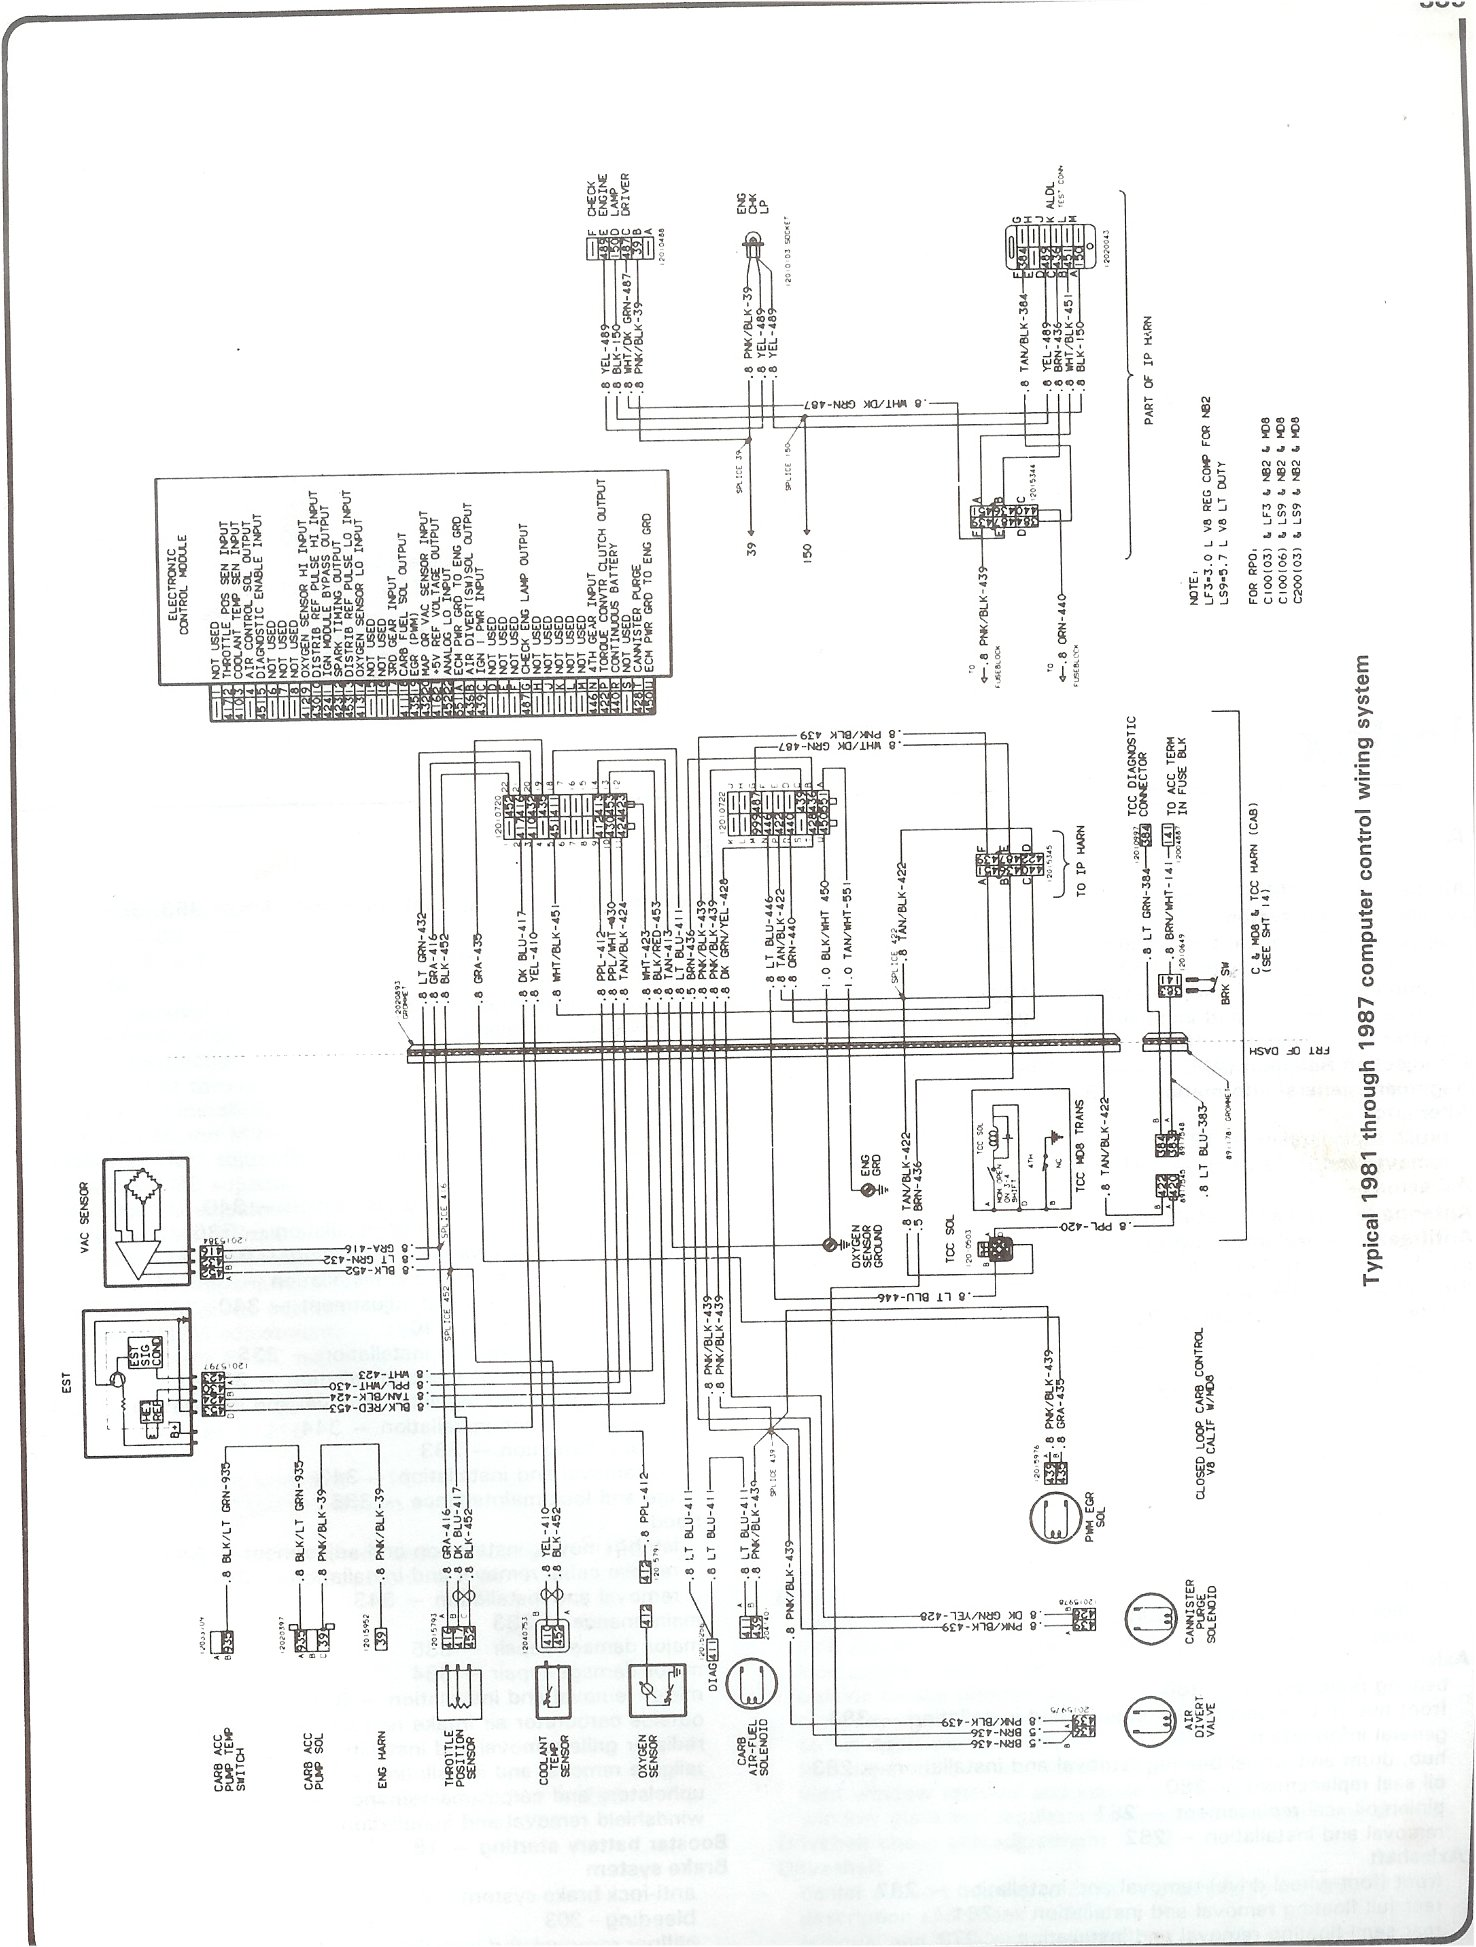 2004 Chevy Silverado Parts Diagram as well Wiring Diagram 1955 Chevy Ignition Switch additionally 2002 Freightliner Columbia Wiring Diagram additionally Porsche 356 Coil Wiring also Wiring Diagrams For Ford Overdrive Transmission. on 1958 chevy truck wiring diagram